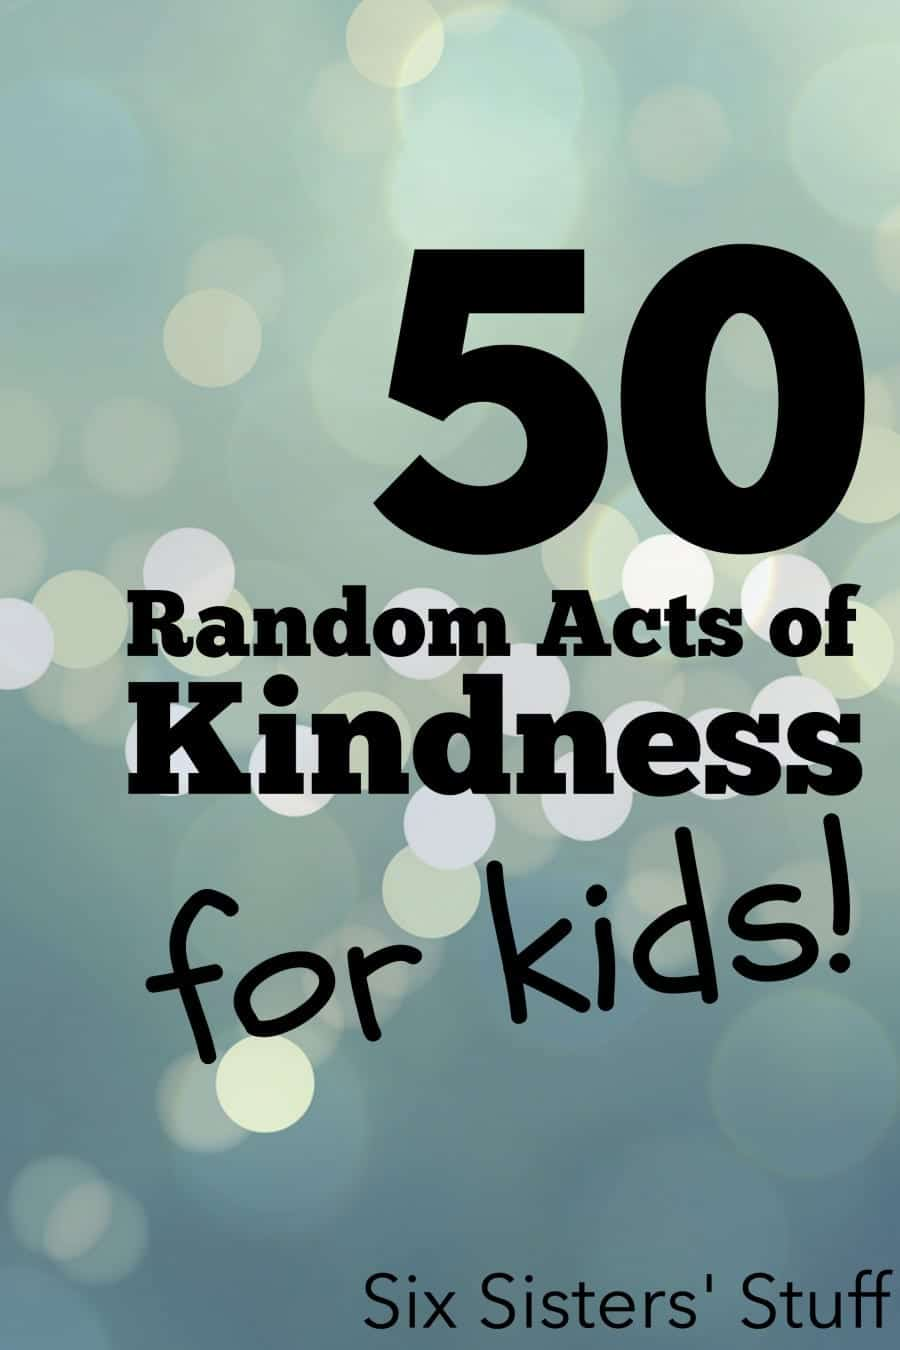 50-Random-Acts-of-Kindness-for-Kids-on-SixSistersStuff